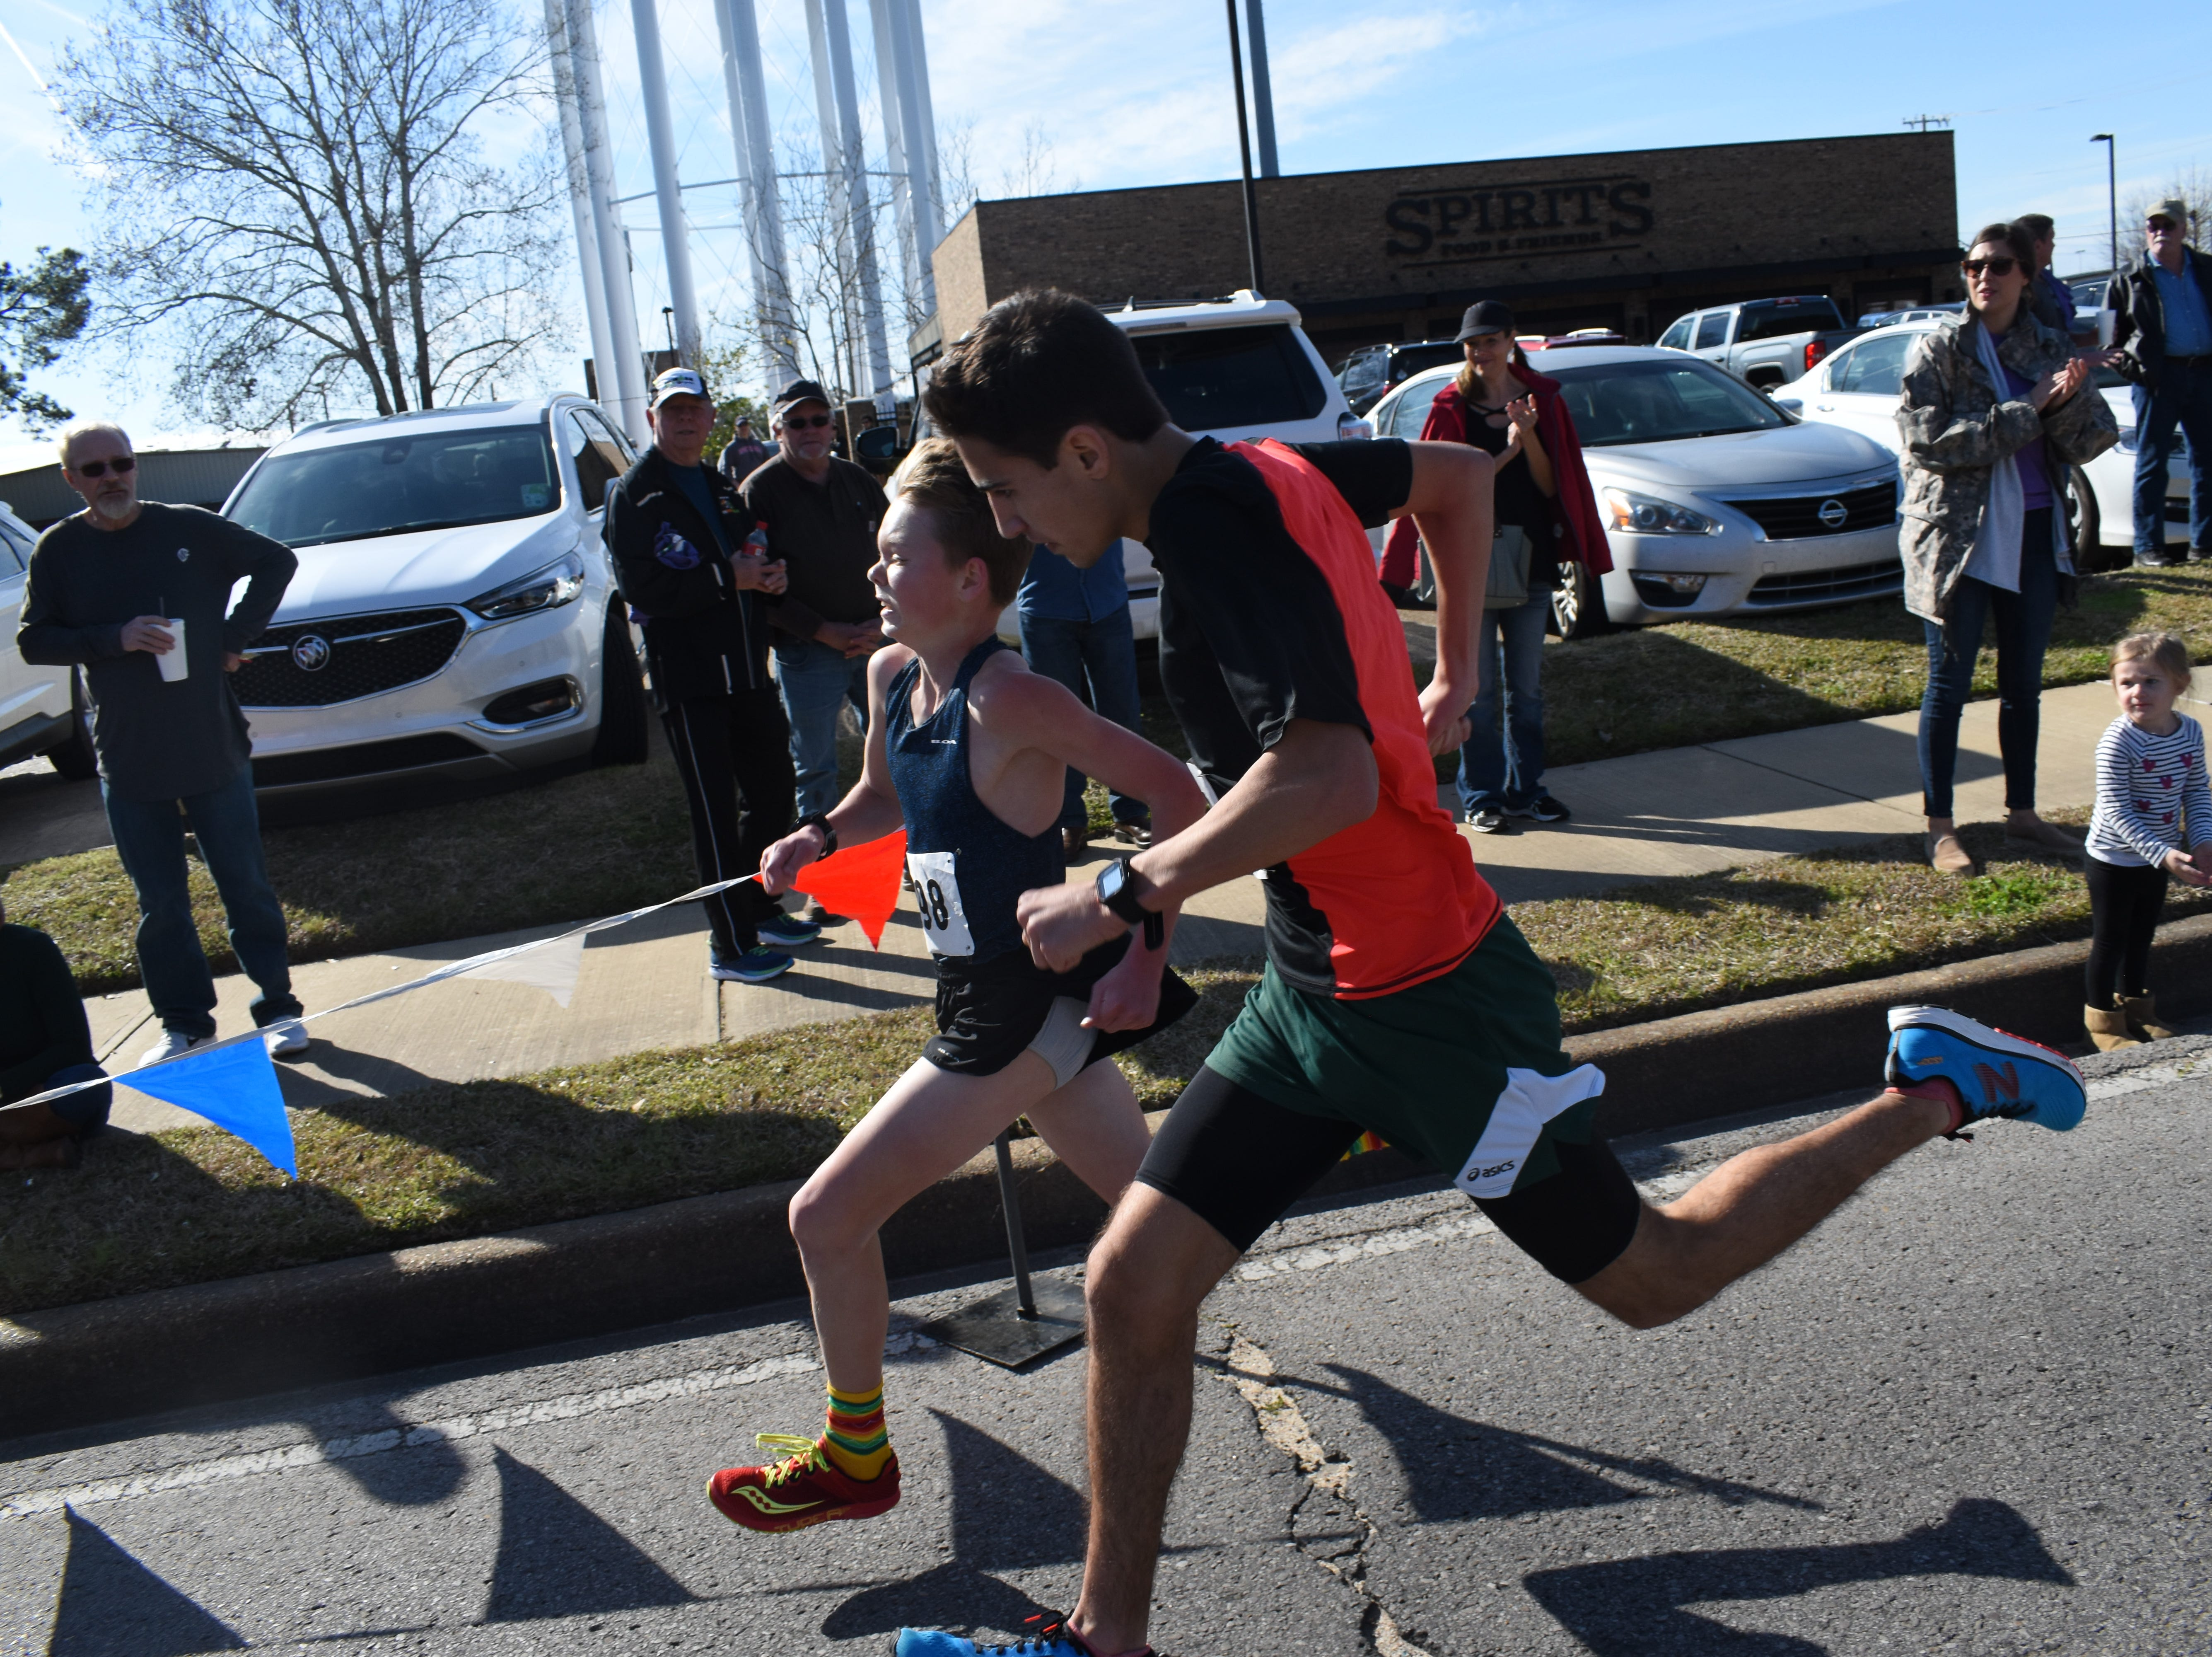 Charles Beard,13, (far left) edges out Braden Scalisi, 16, to come in third in the Spirits 5K with a time of 18:24.4. Scalisi placed fourth with 18:24.6.Over 212 runners participated in the 19th annual Spirits 5K and 1-mile Fun Run benefitting the Manna House Saturday, Jan. 26, 2019. About 75 runners participated in a new event held this year - the Beer Run. Runners had to drink four beers and sprint to the finish line. Proceeds from the runs benefit the Manna House which serves free meals year round to anyone who needs a meal regardless of income. Over 200 people a day are fed. The Manna House opened in 1990 and was the vision of Father Gerad Foley.